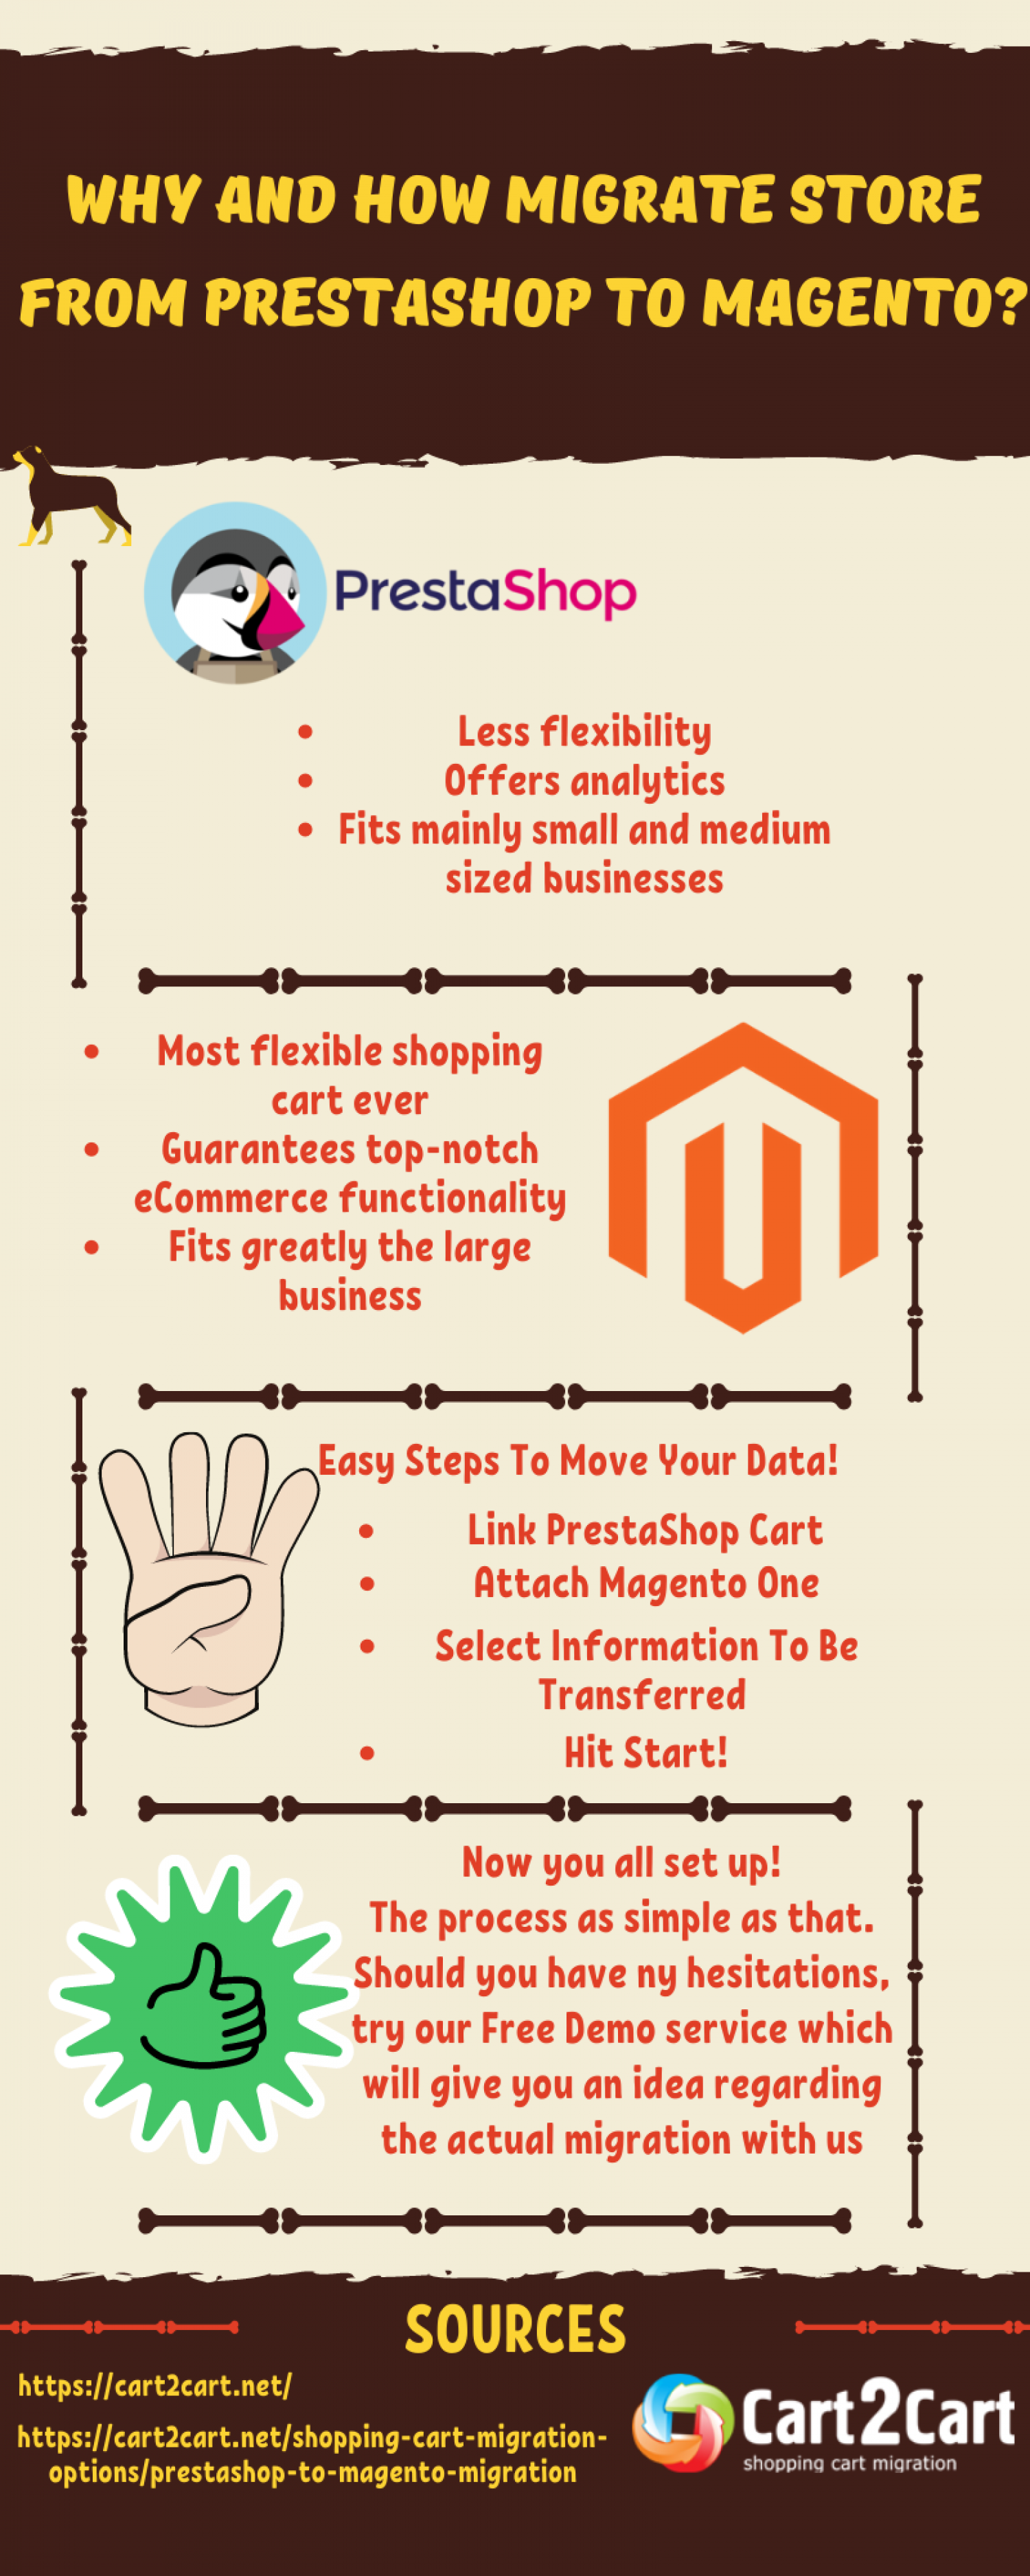 Why and how migrate store from PrestaShop to Magento Infographic